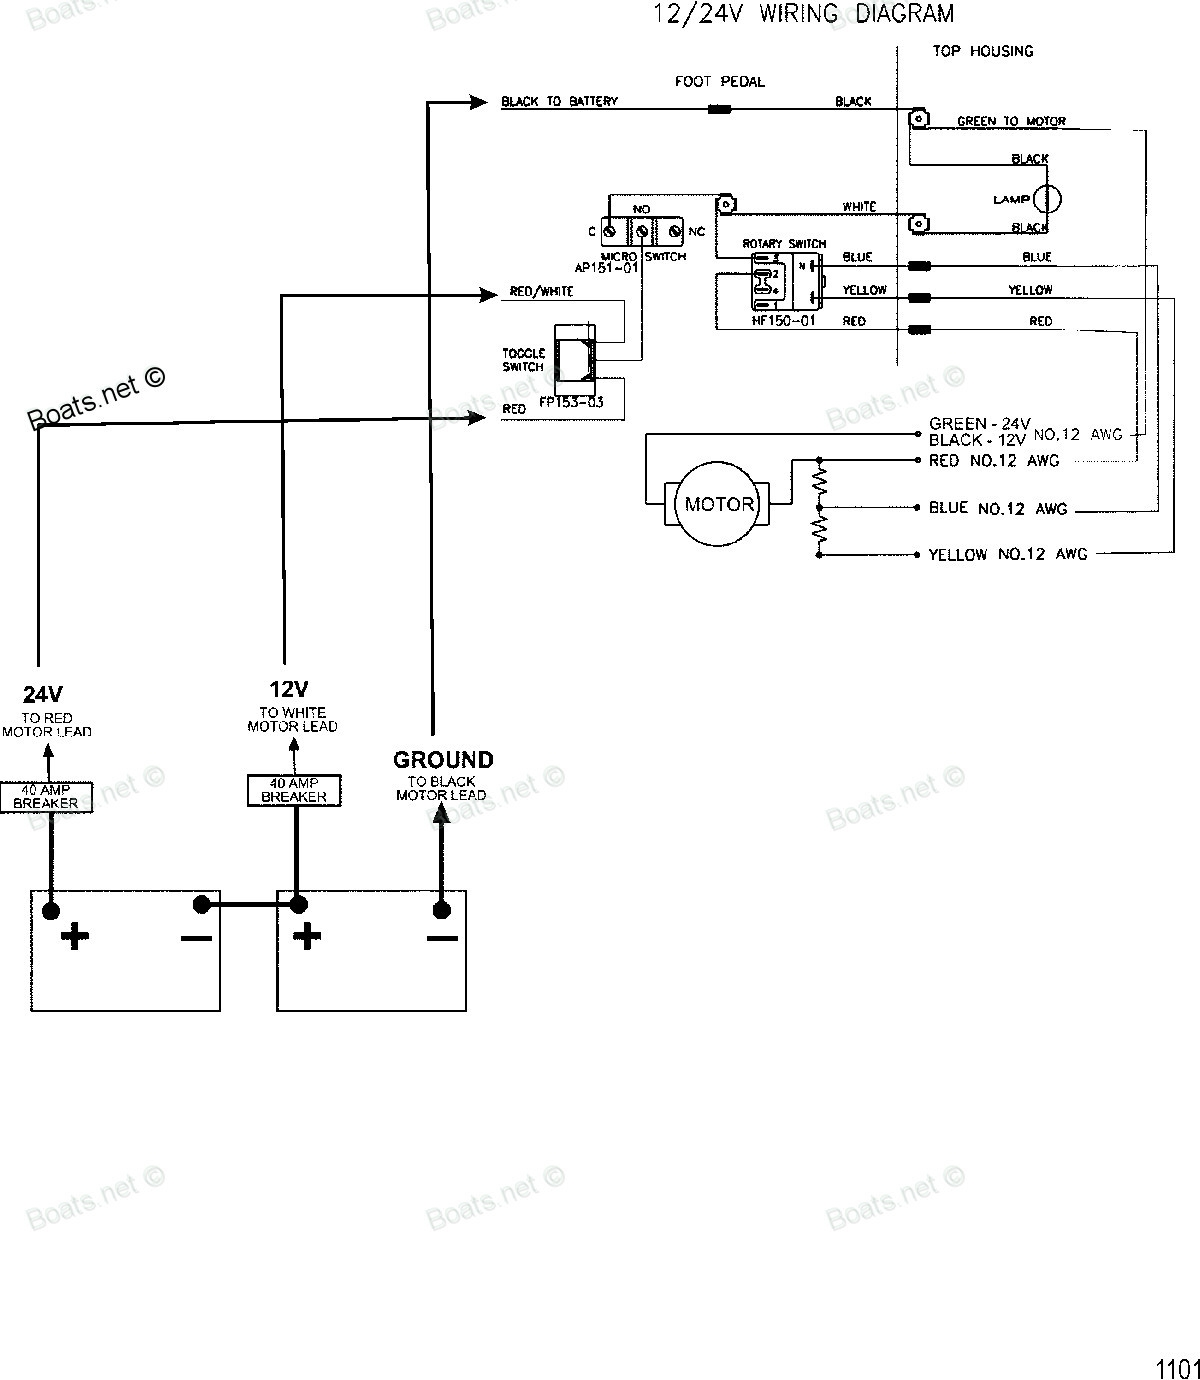 motorguide wiring diagram wiring diagram post motorguide wiring diagram wiring diagram review motorguide brute wiring diagram